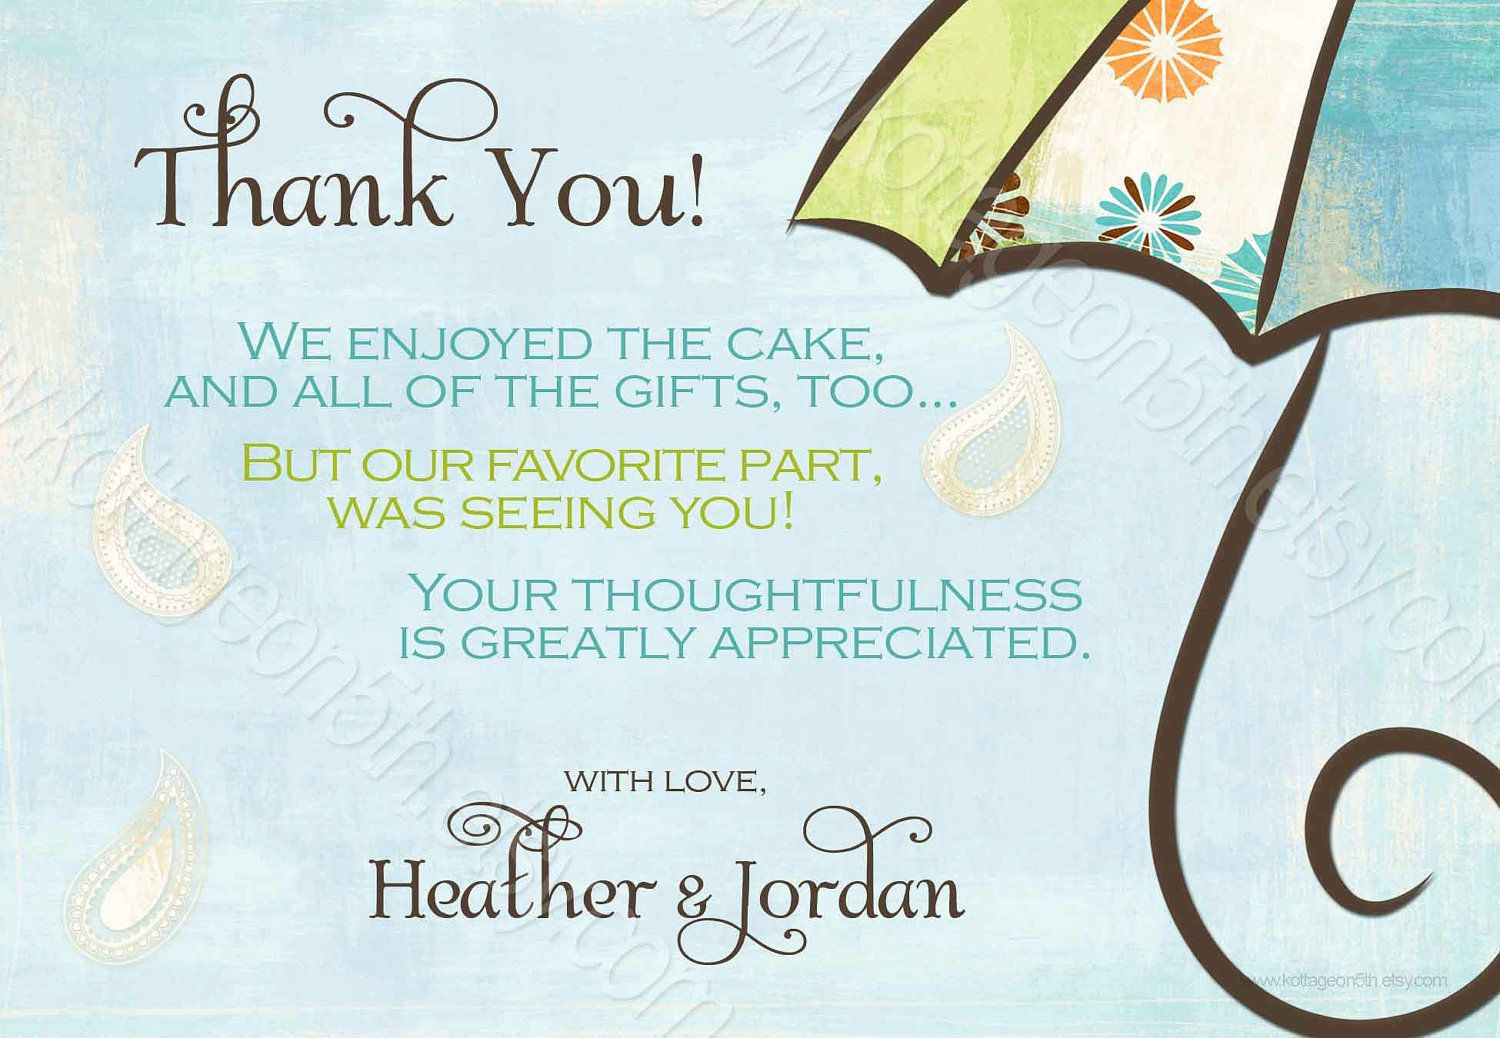 008 Magnificent Thank You Card Wording Baby Shower Gift High Resolution  For Multiple GroupFull